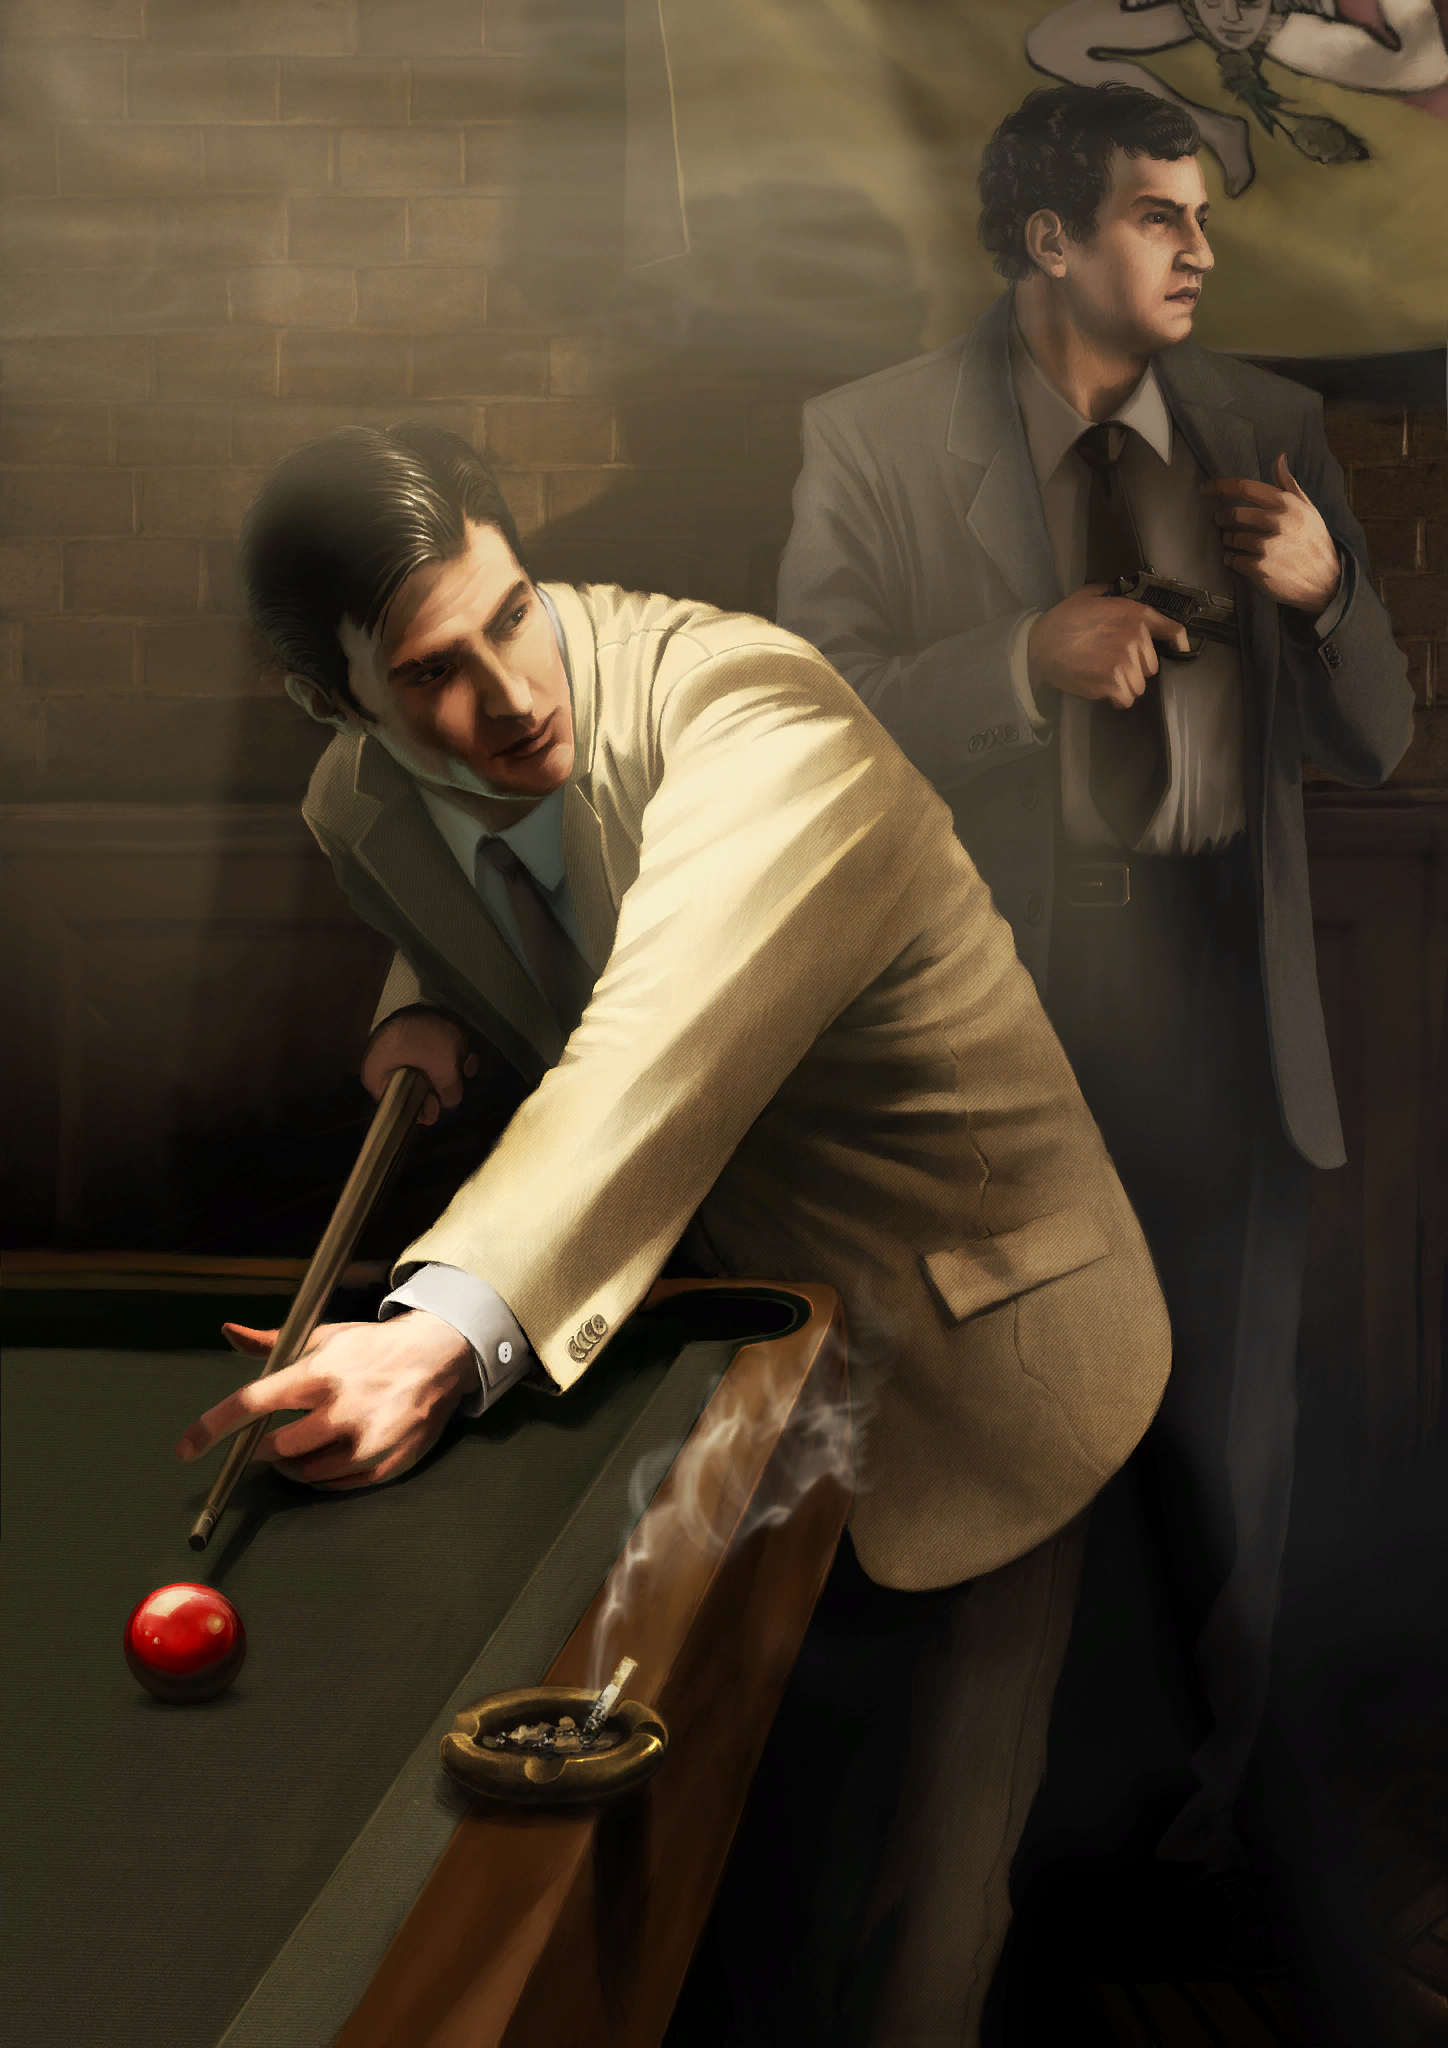 mafia Gentlemen realistic billiards HD Wallpaper